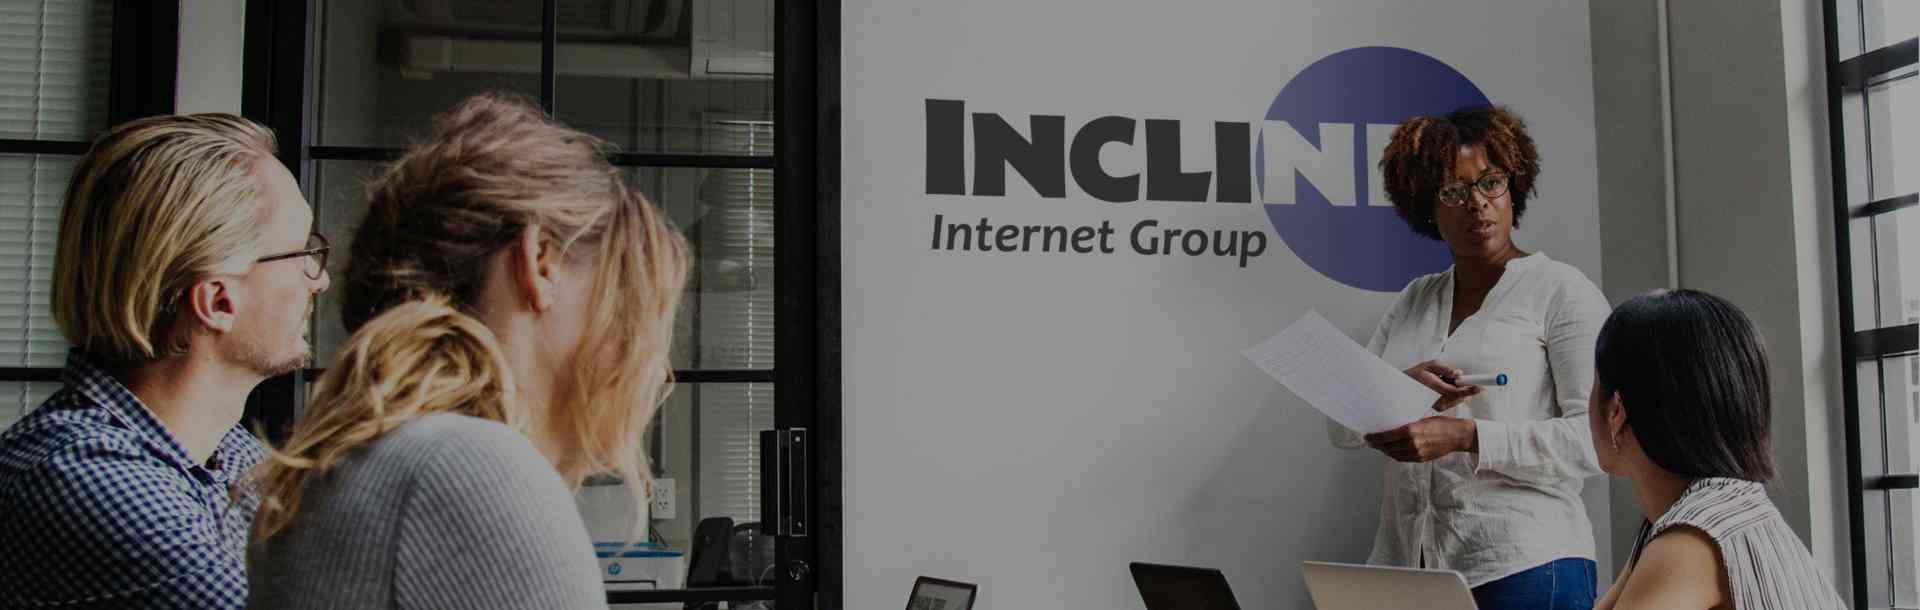 Inclinet Internet Group